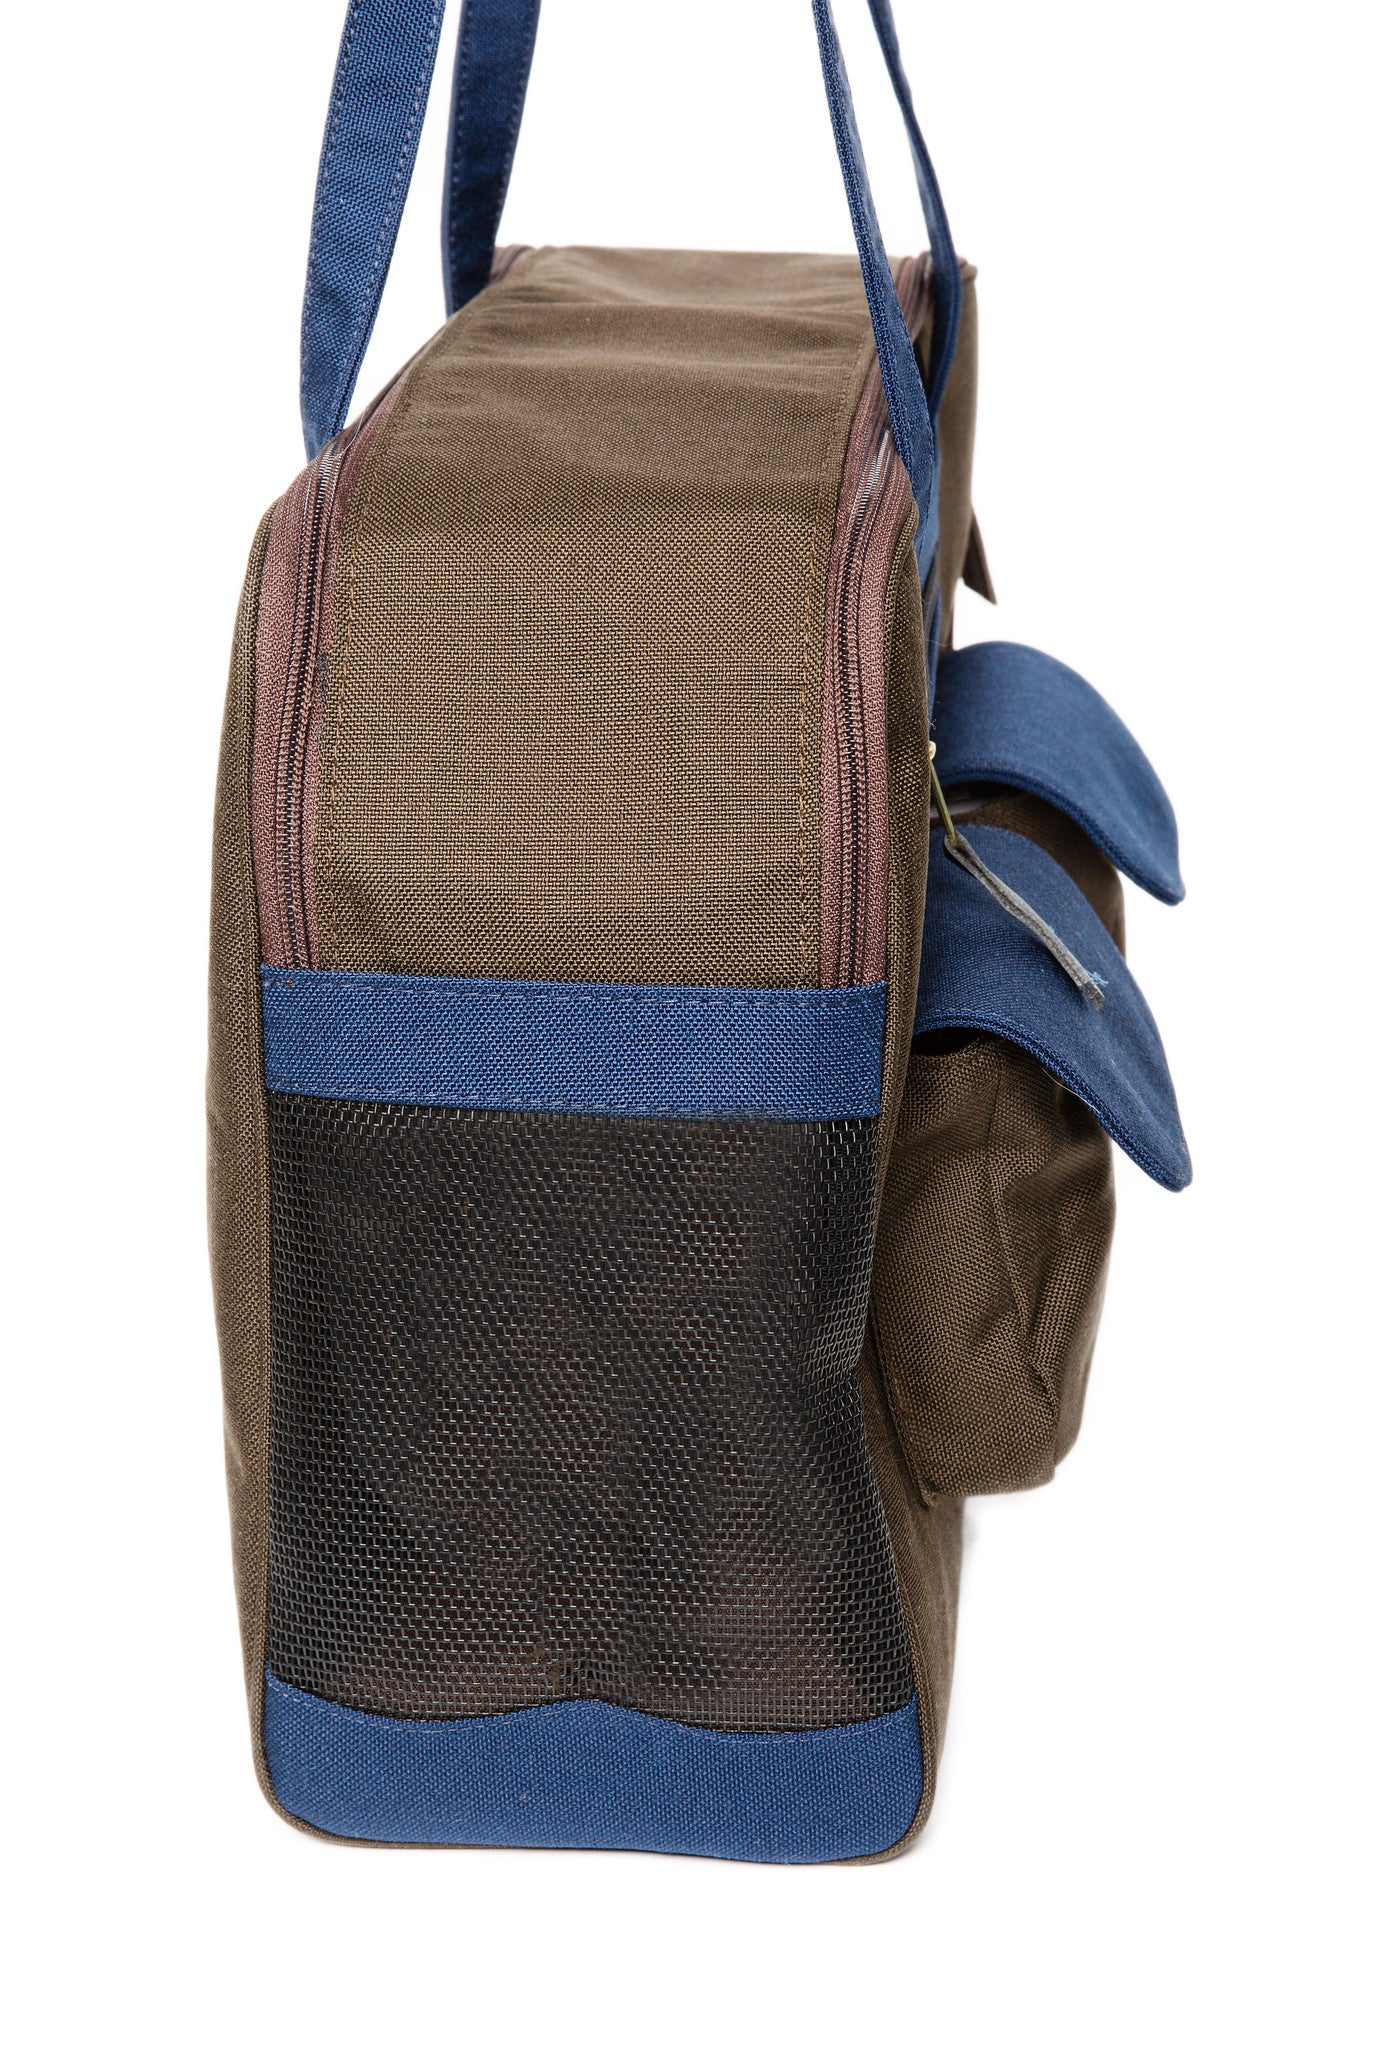 Year Round | Chocolate Canvas | Colored Canvas Trim | Dog Carrier